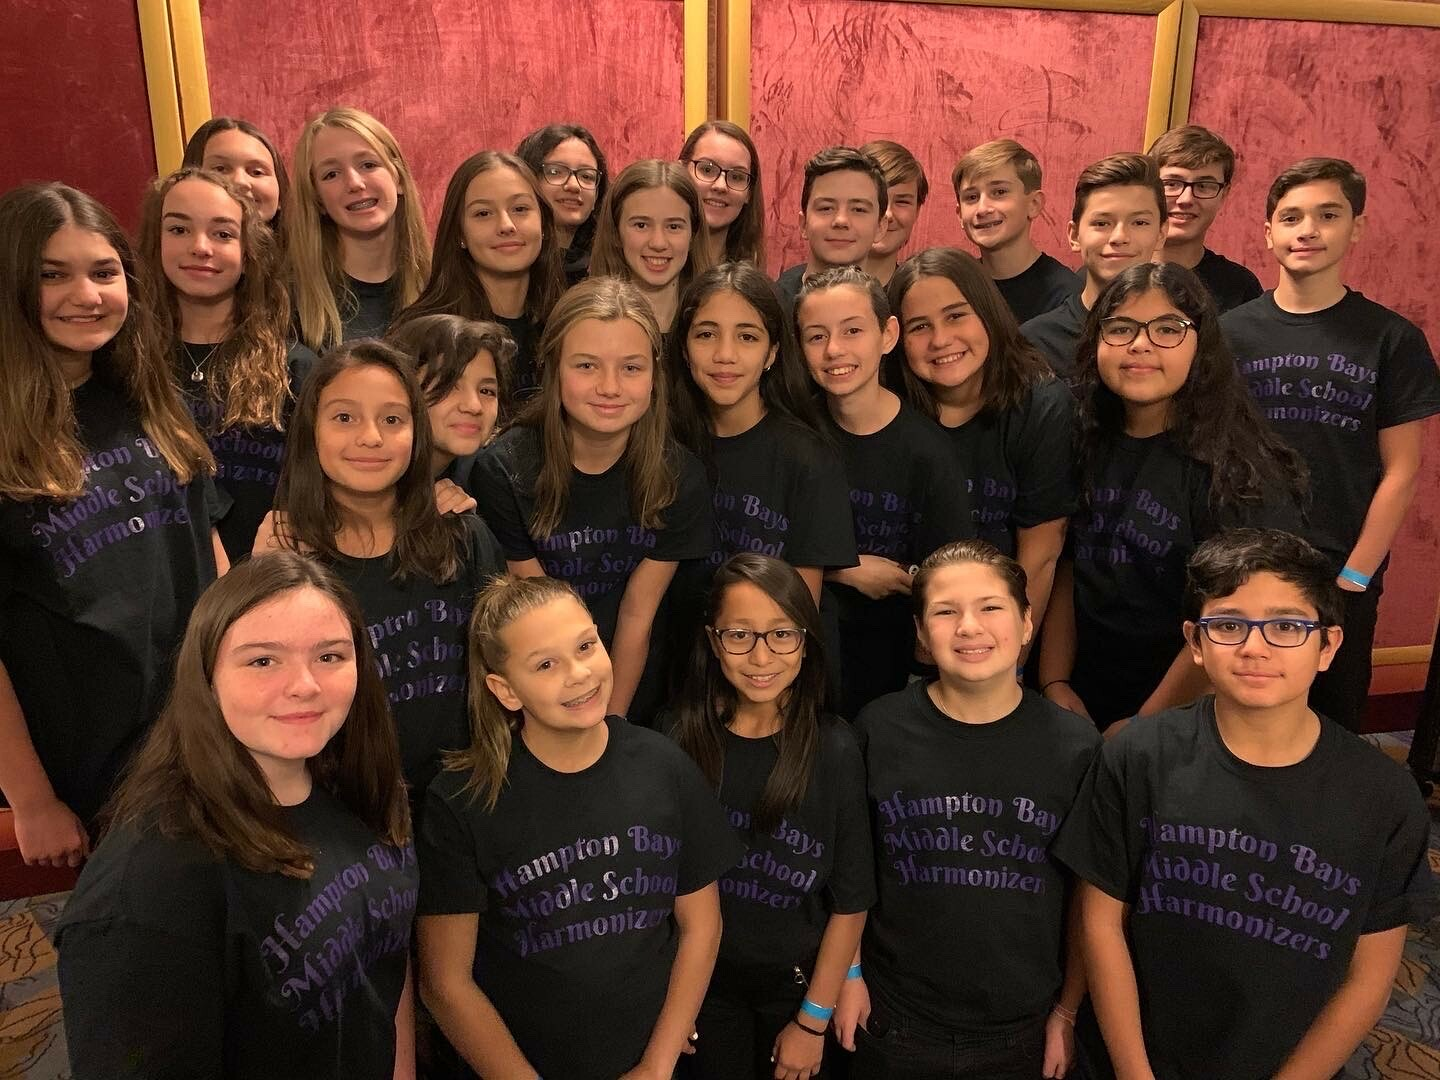 Hampton Bays Middle School's Harmonizers performedg at Radio City Music Hall on November 23 to a sold-out audience of 6,000. The 26- member vocal ensemble sang a cappella renditions of holiday songs before the curtain opened on the Christmas Spectacular featuring the Rockettes. Nickolette Kacharaba conducted the group and Carolanne Mazur accompanied them with body percussion.